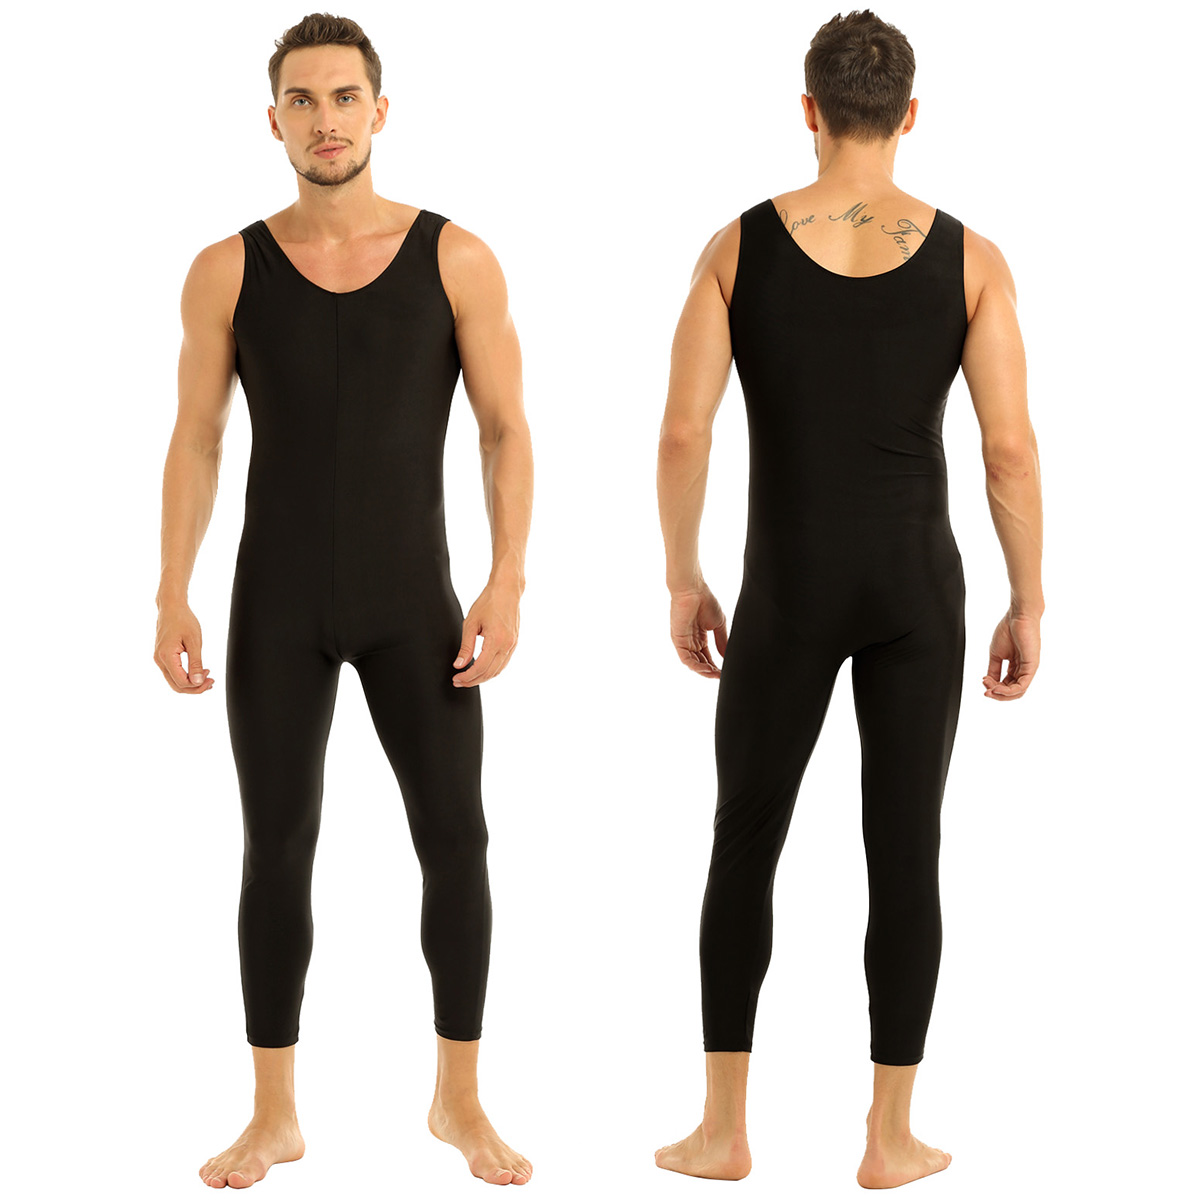 Men Sleeveless Leotard Bodysuit Lycra Tights Leggings for Ballet Dance Vest Teddy Sports Unitard Catsuit Male Dancewear Jumpsuit 29